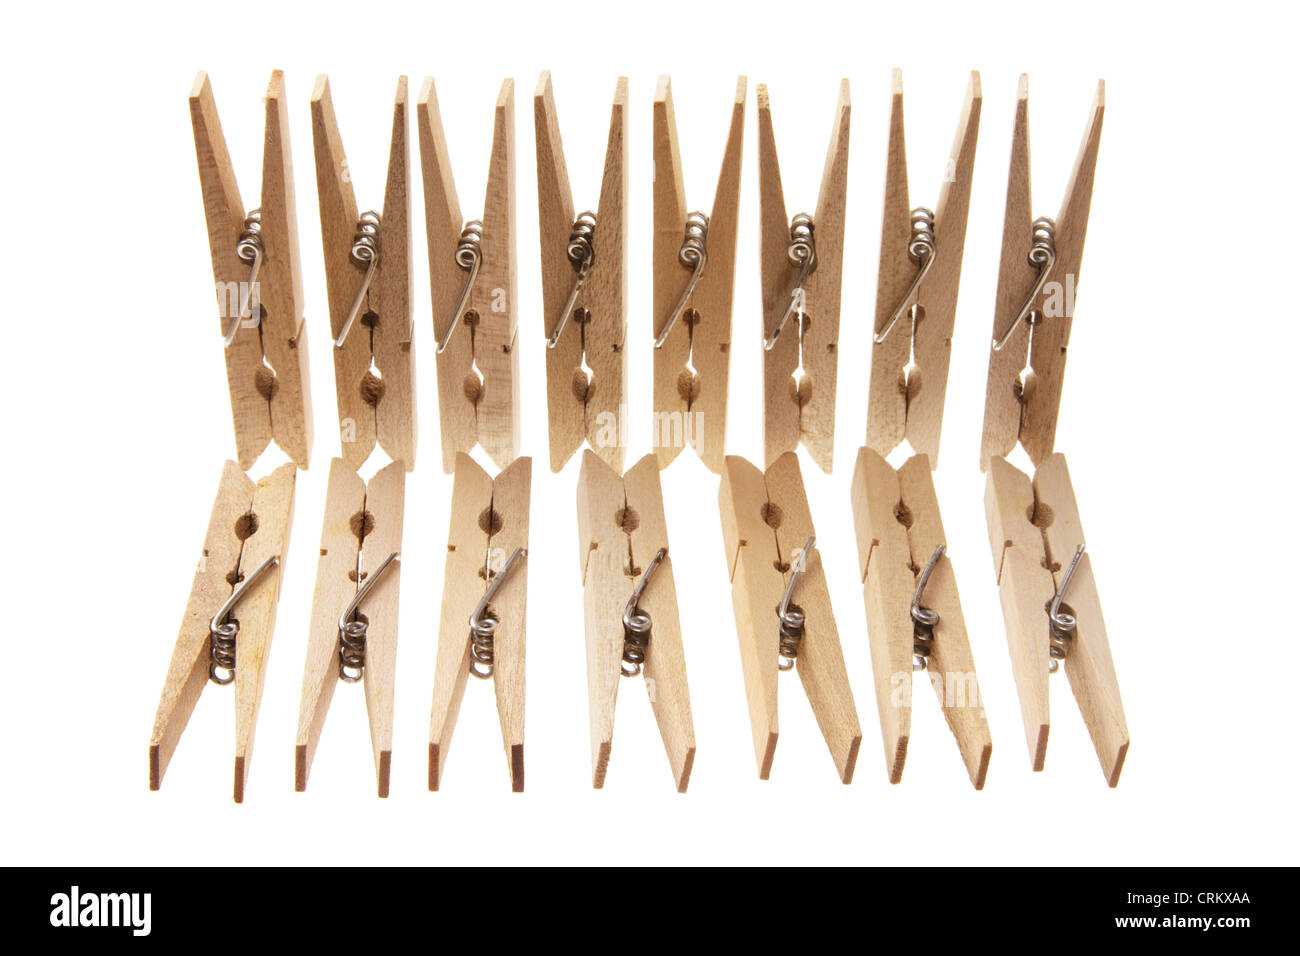 Wooden Clothes Pegs - Stock Image